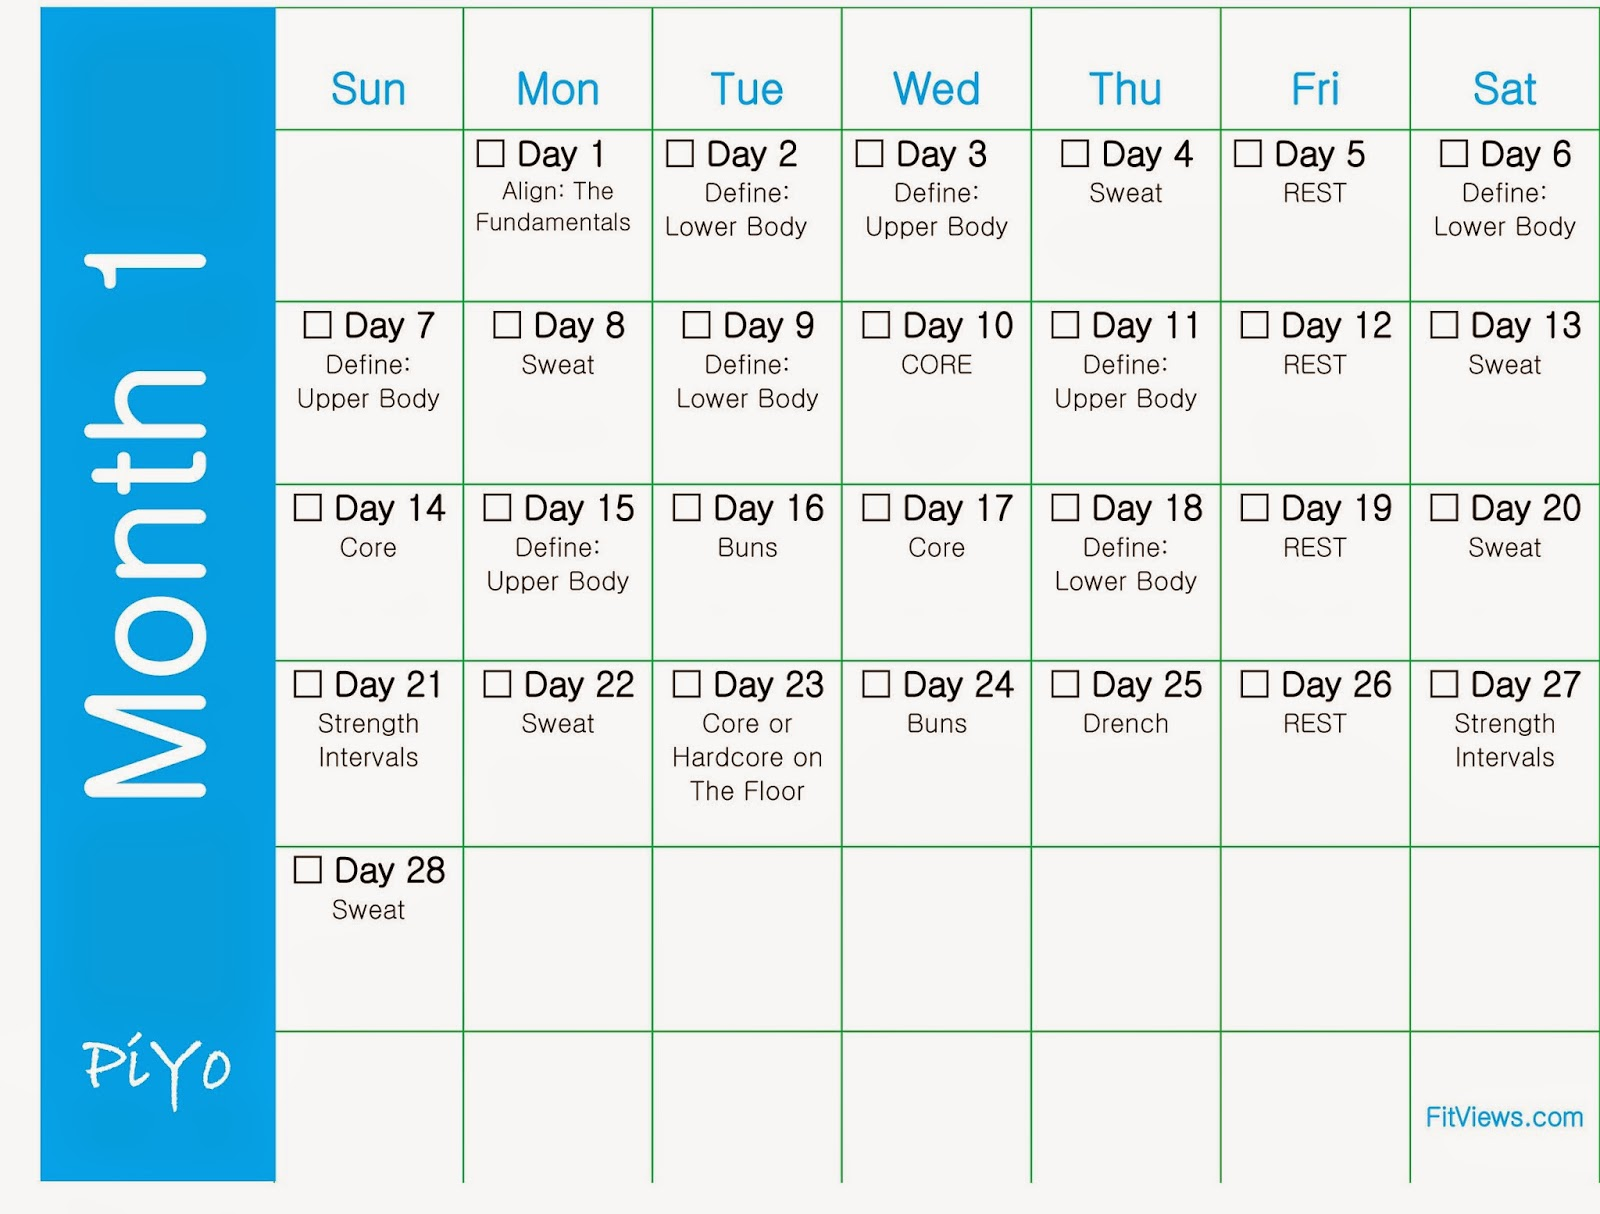 ... Getting Started With Piyo + Free Printable Piyo Workout Calendars